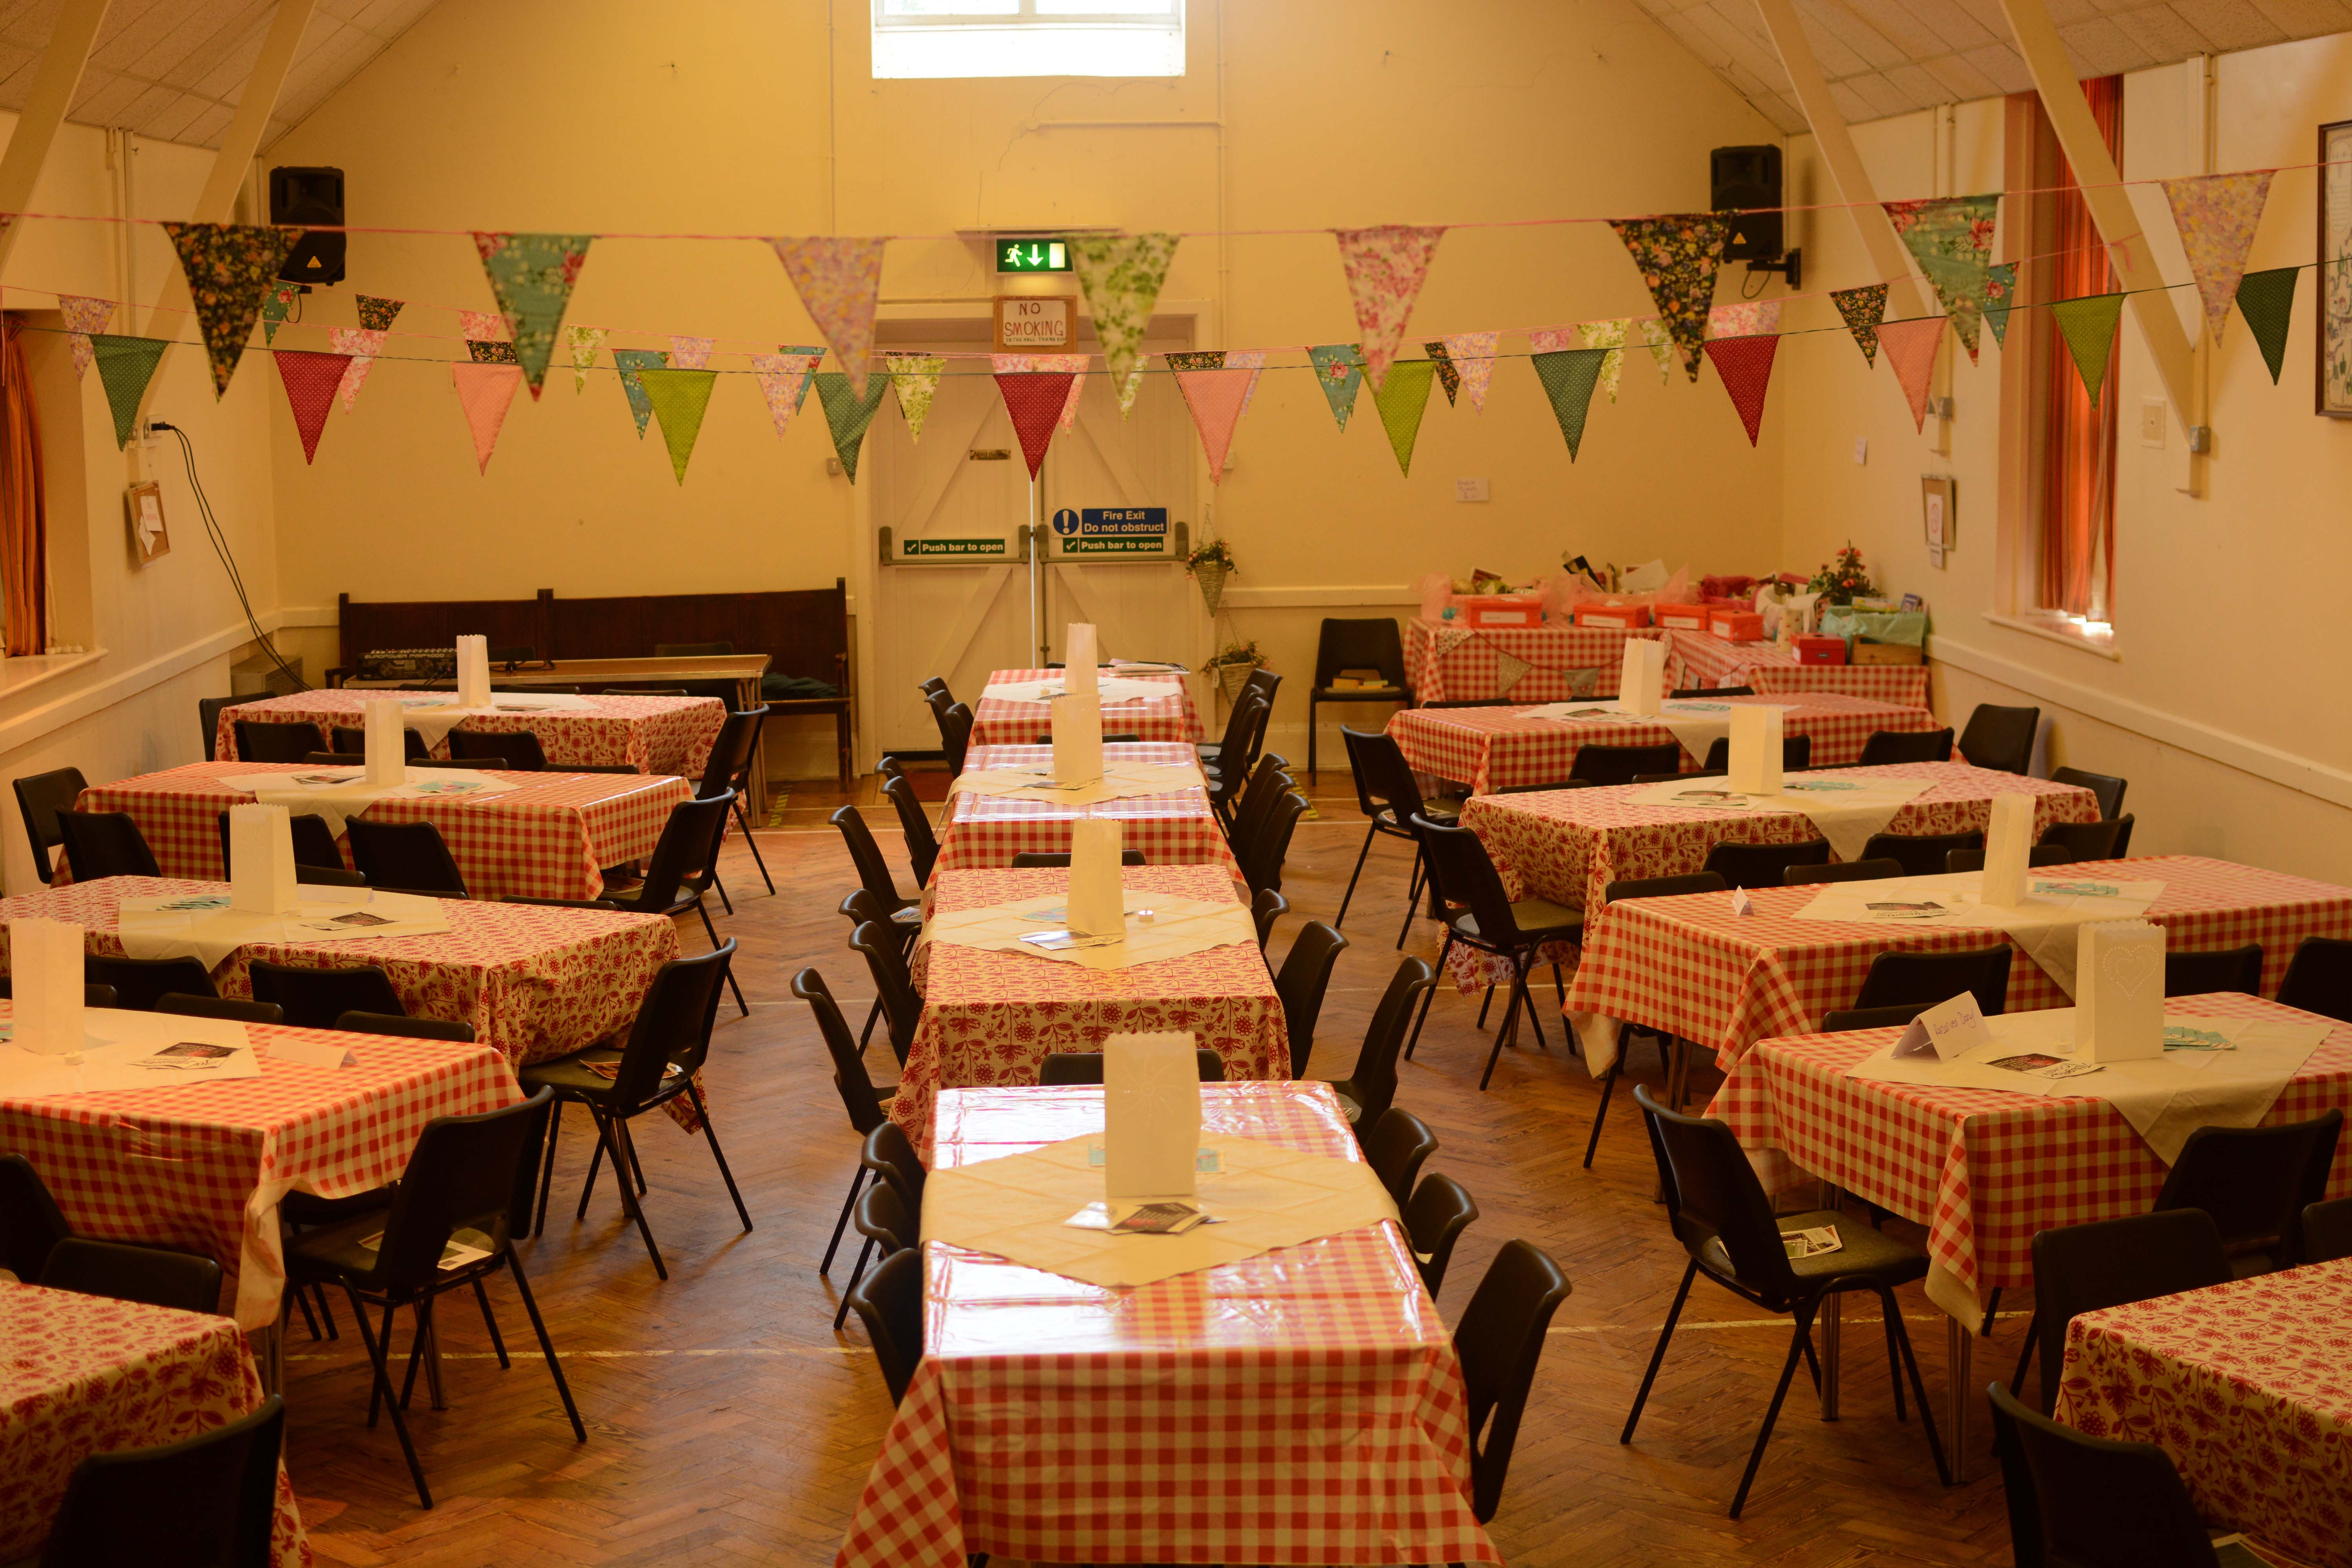 Hire the hall for a wedding, party or quiz!